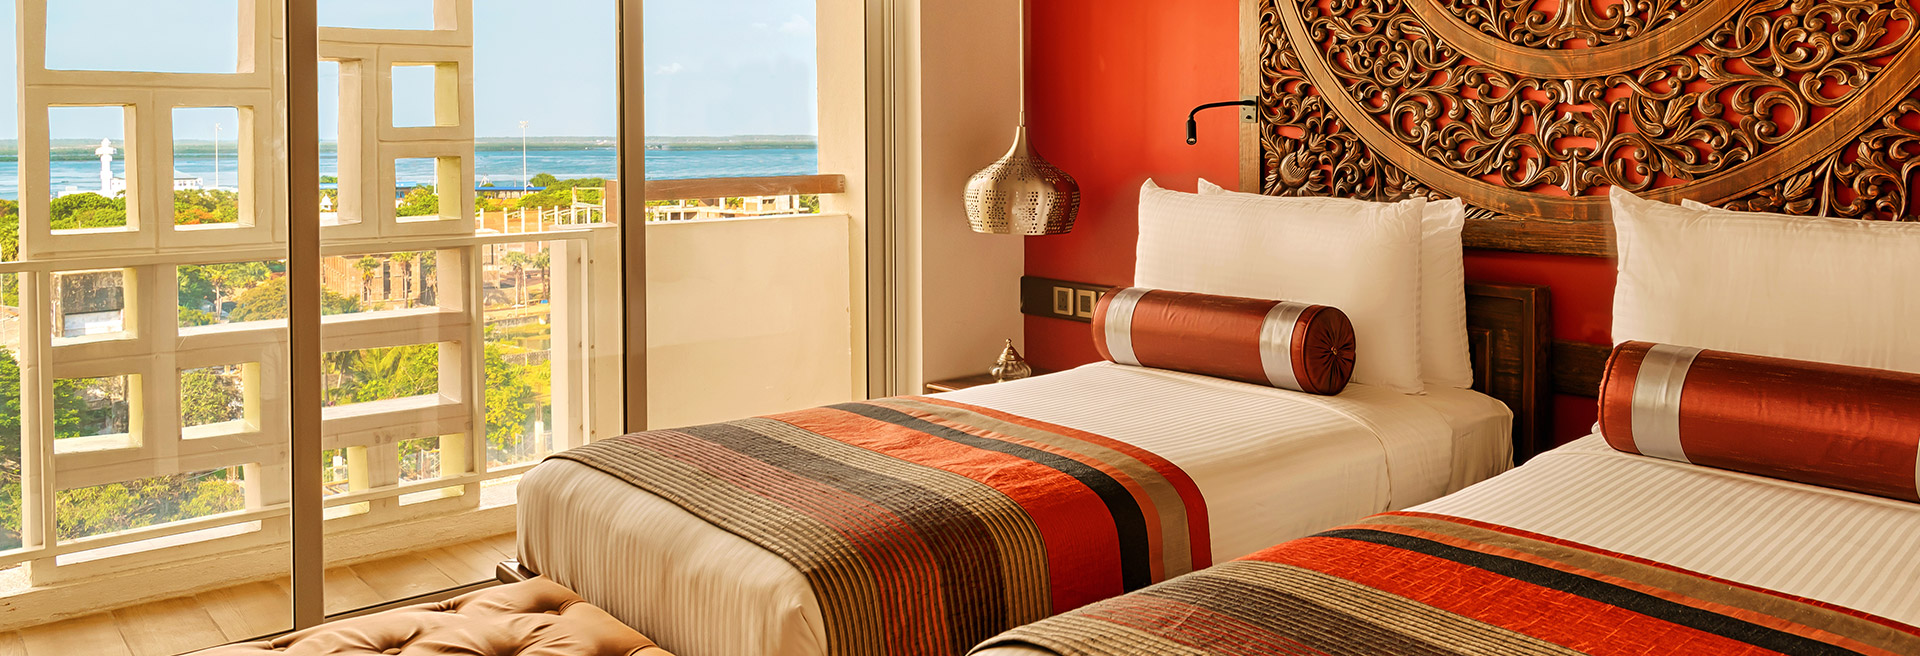 Jetwing Jaffna Hotel Double Bed